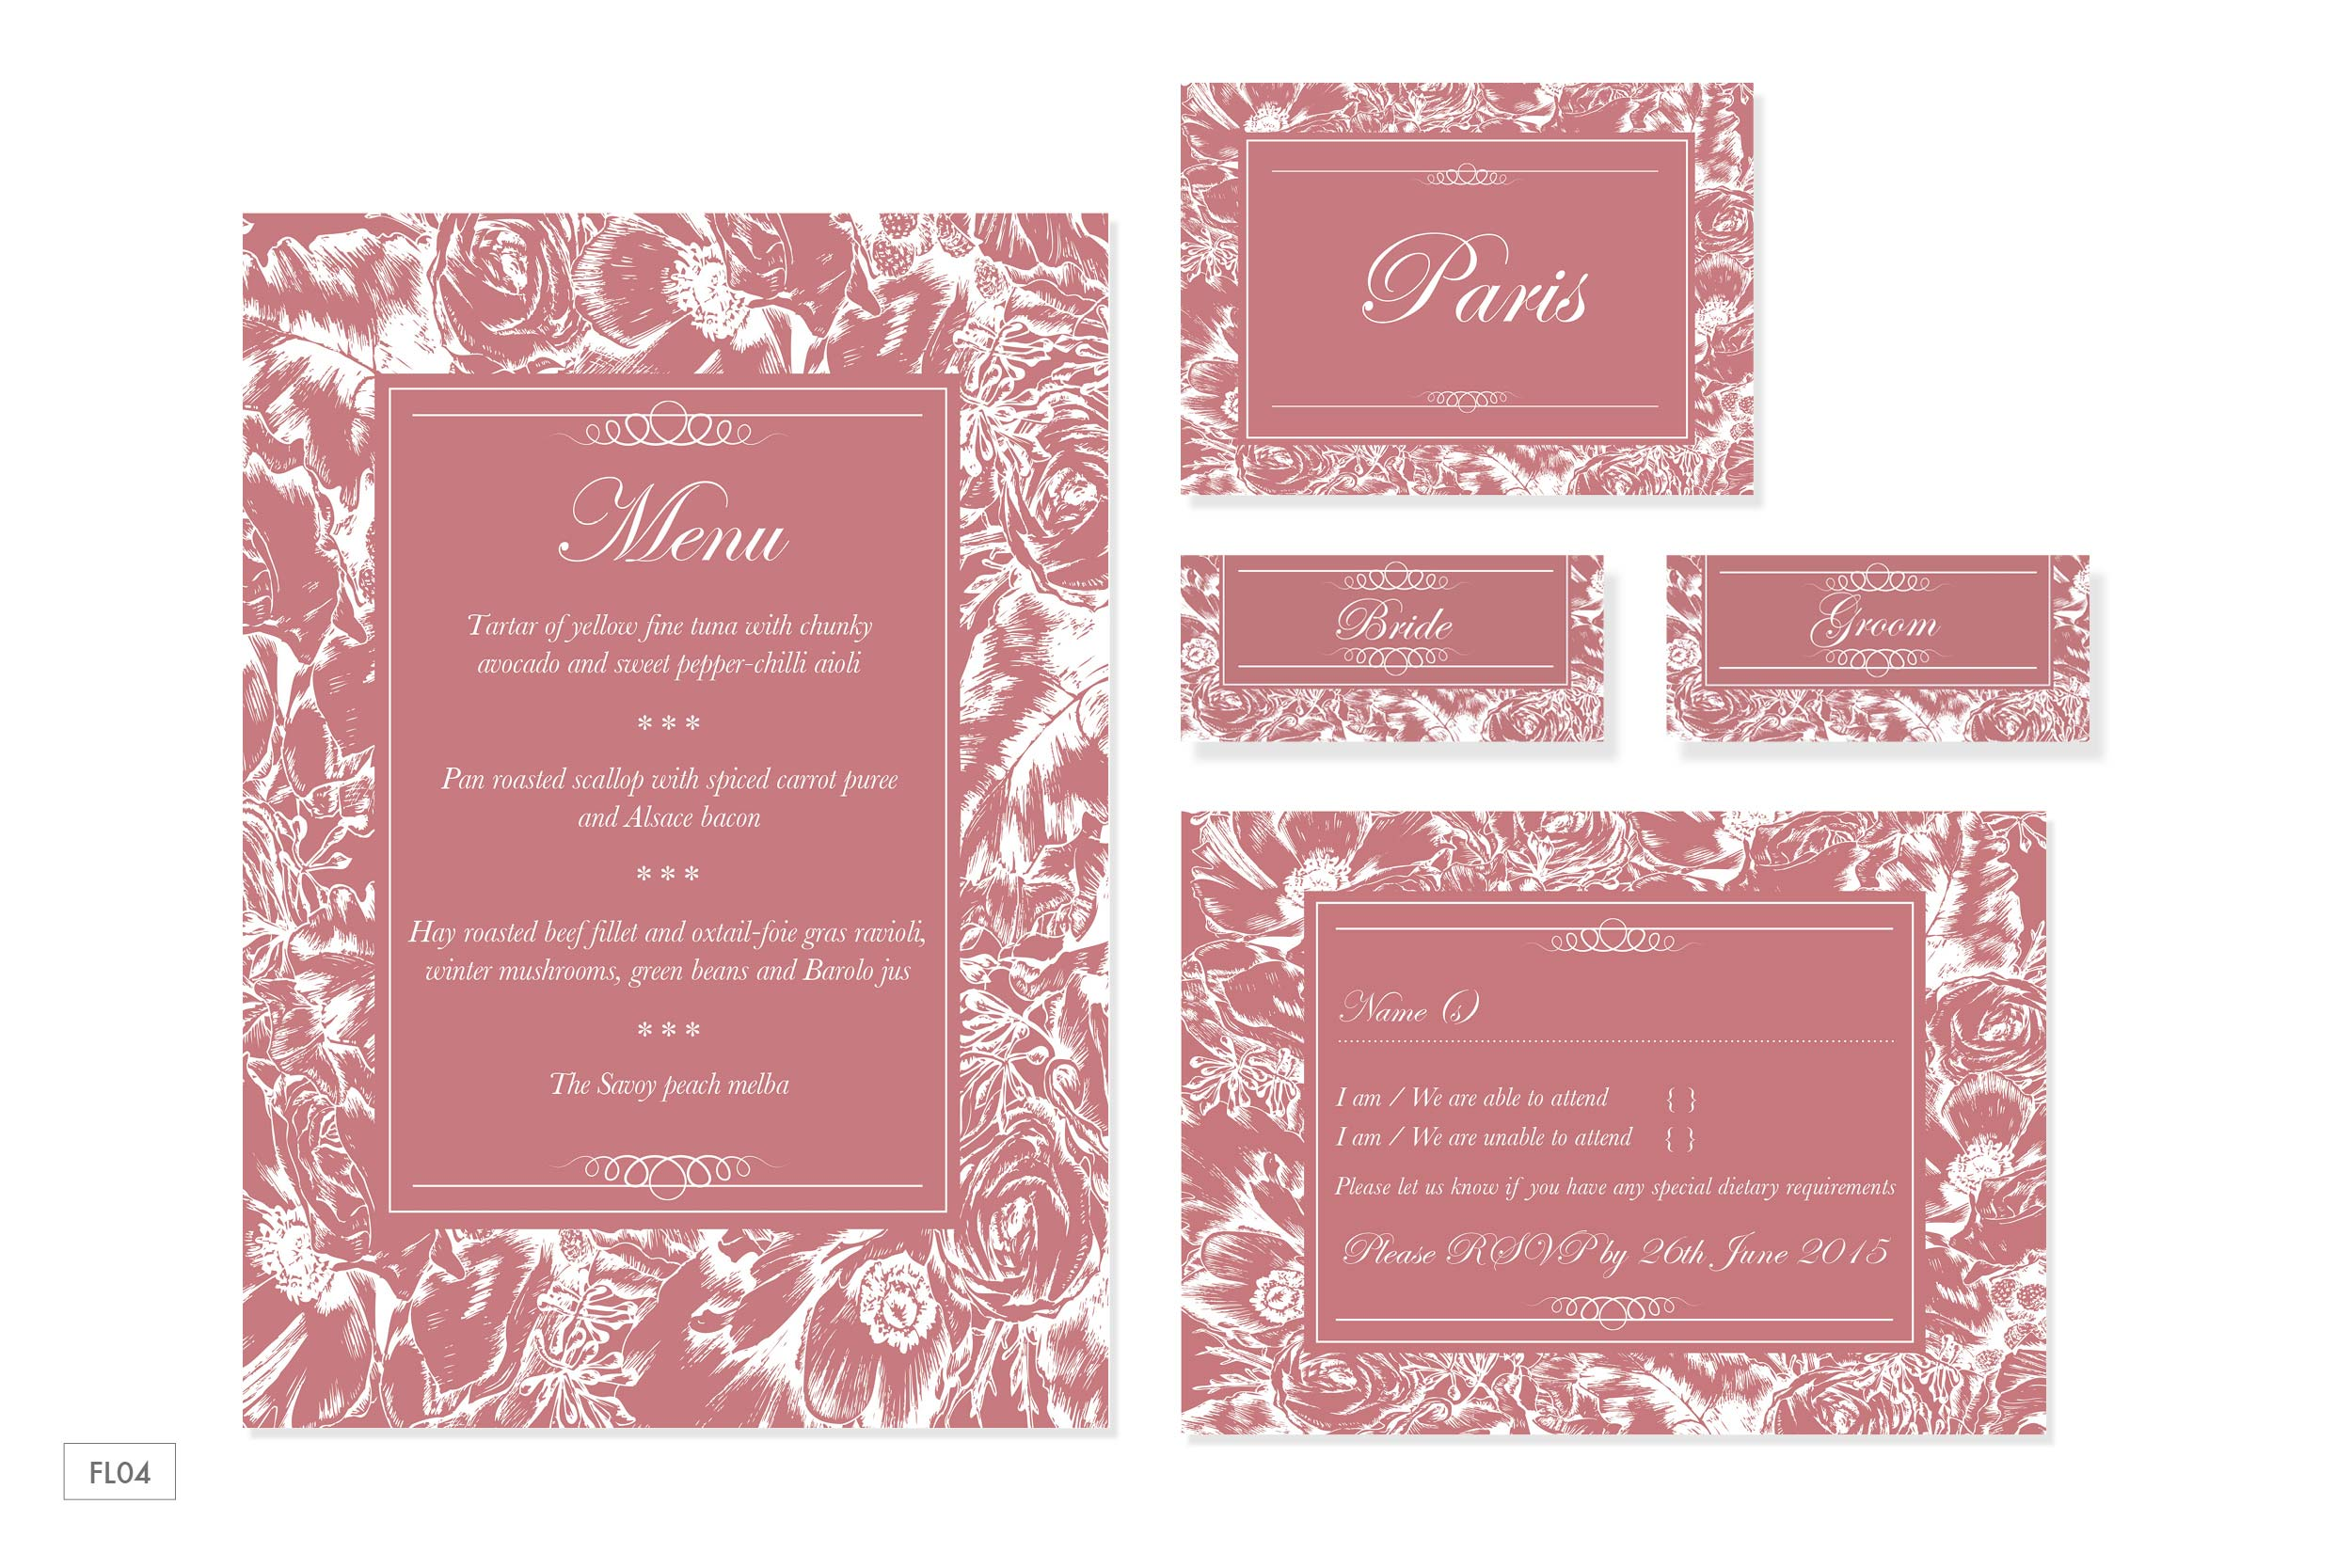 ananya-wedding-stationery-floral-fl04b.jpg